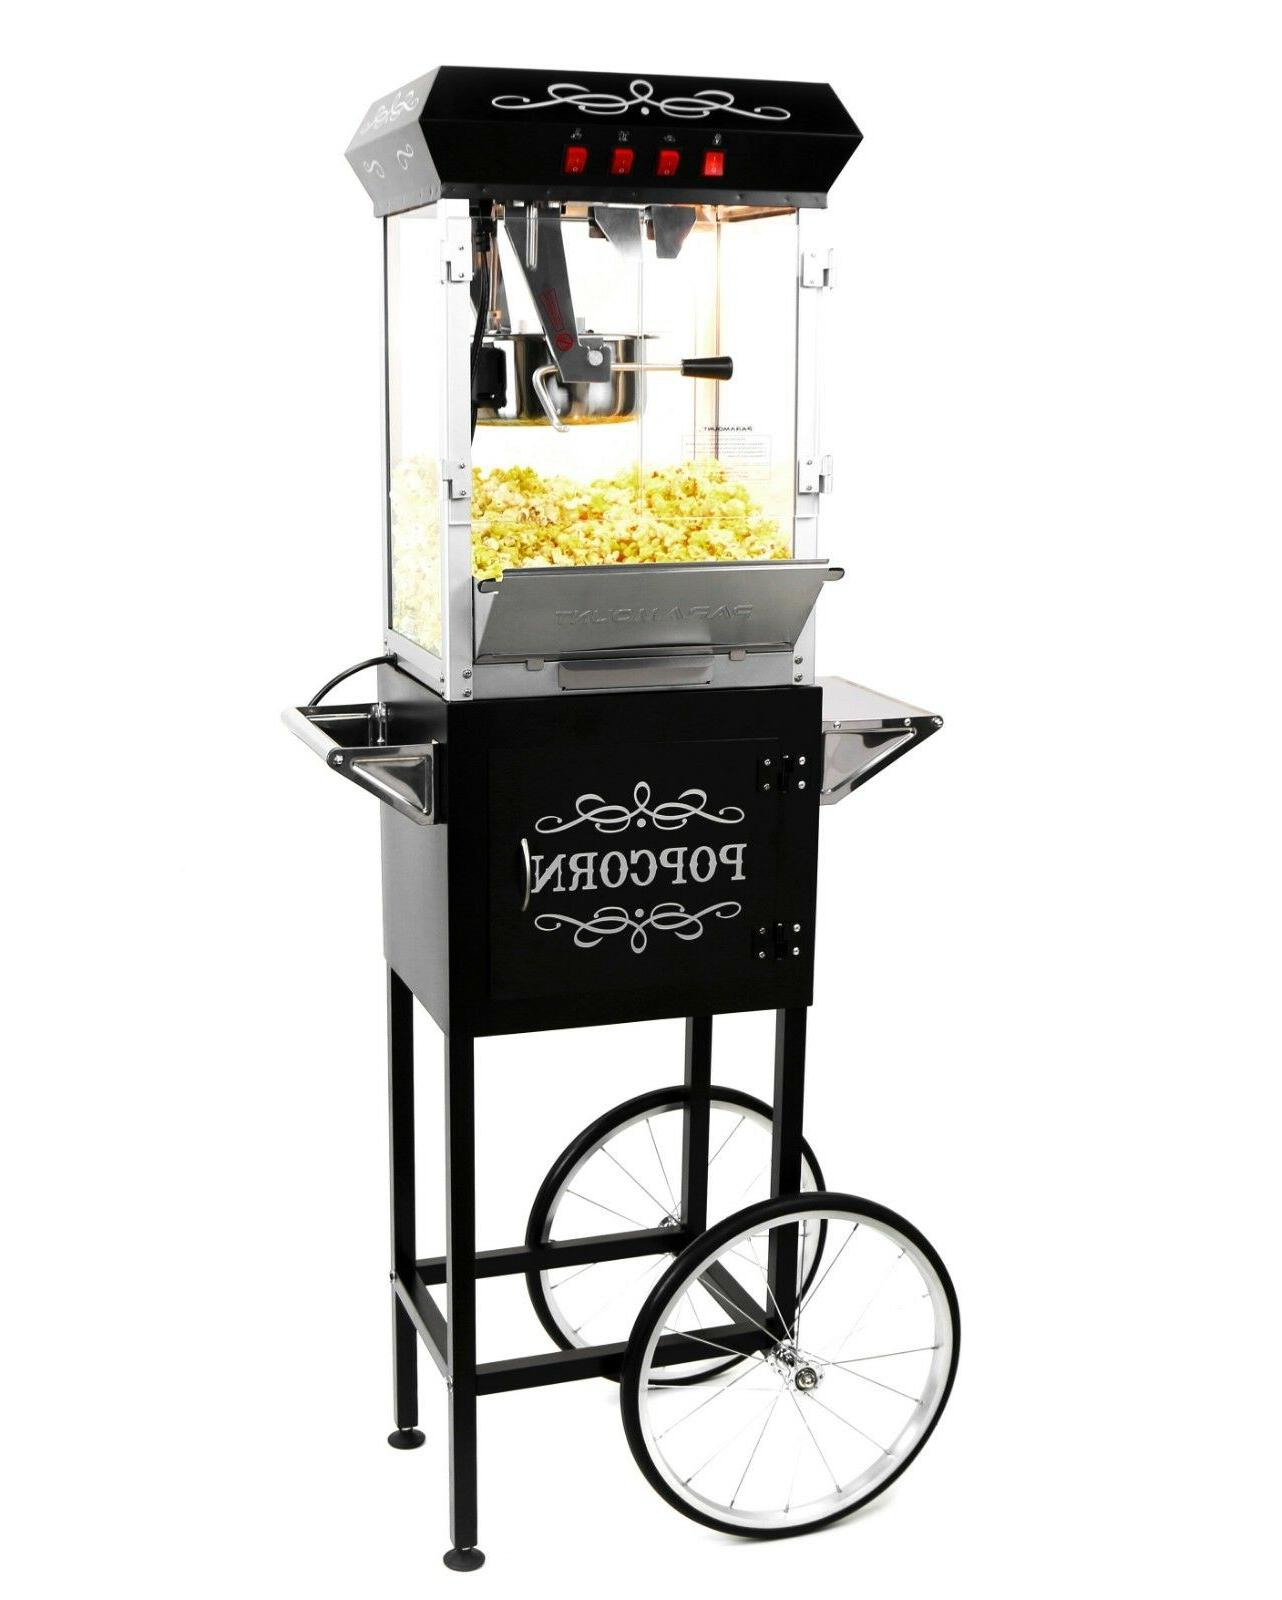 8oz popcorn maker machine and cart new